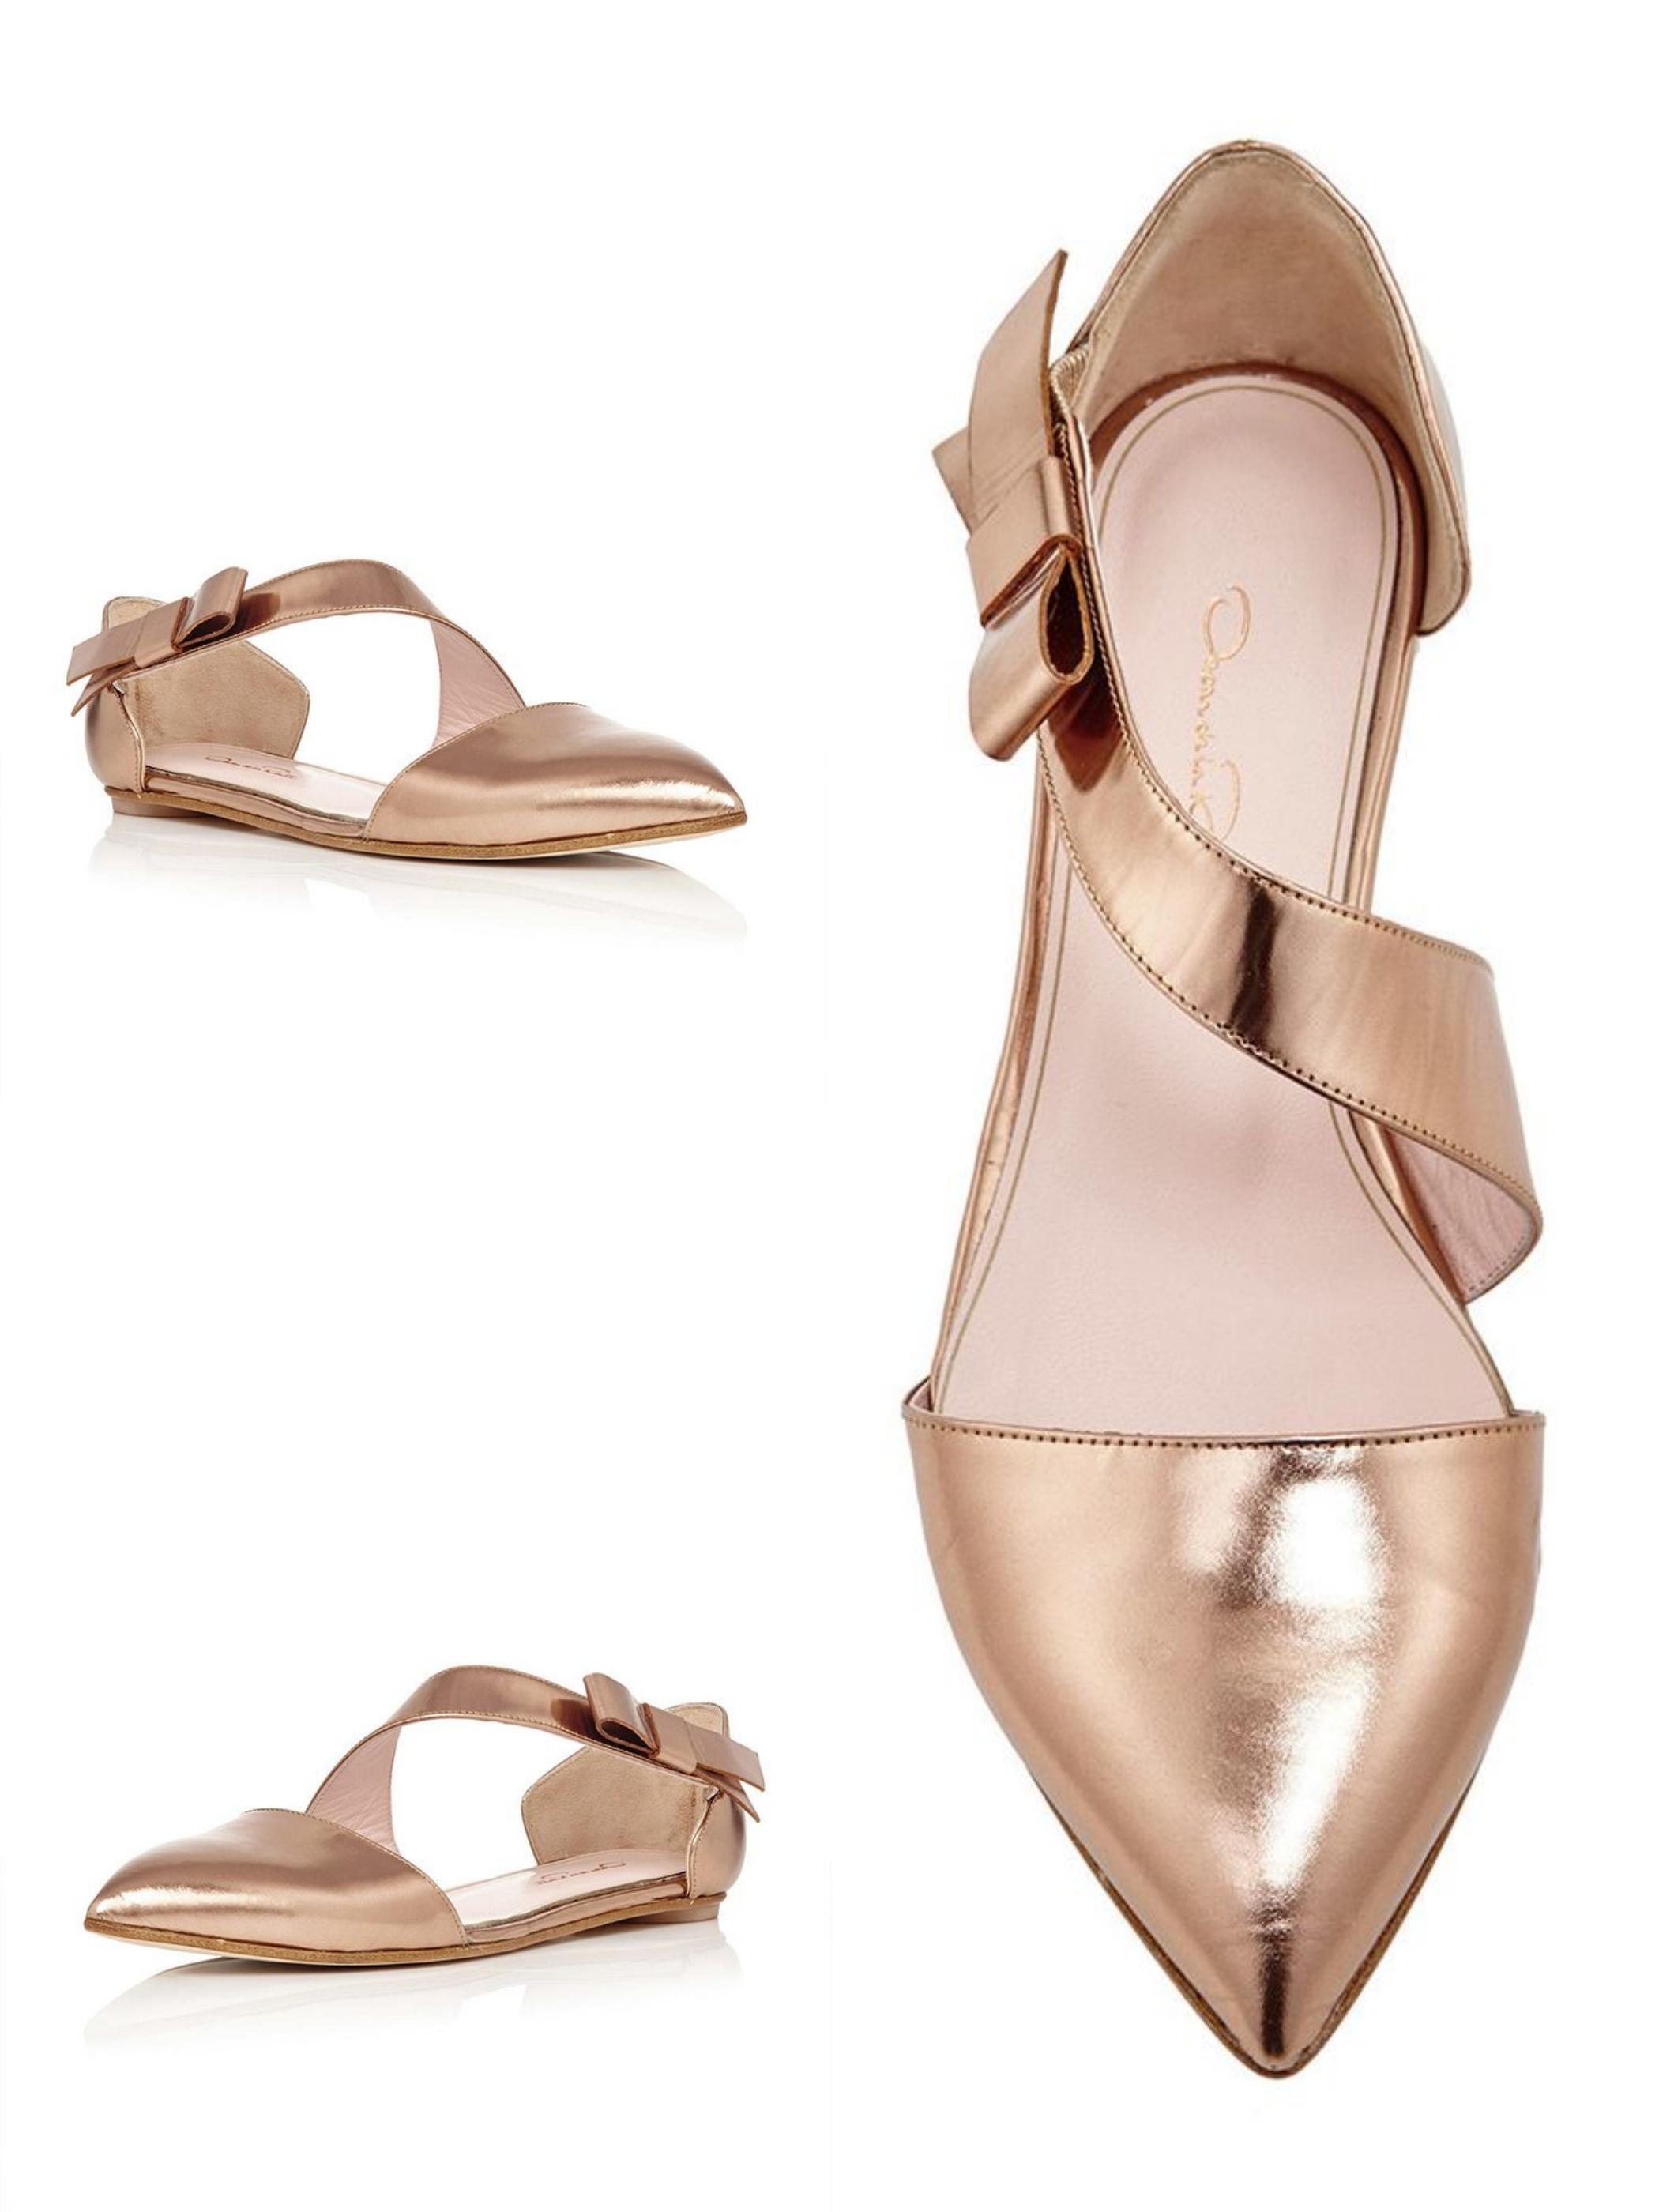 Oscar de la Renta, Copper Leather Harlet Flats